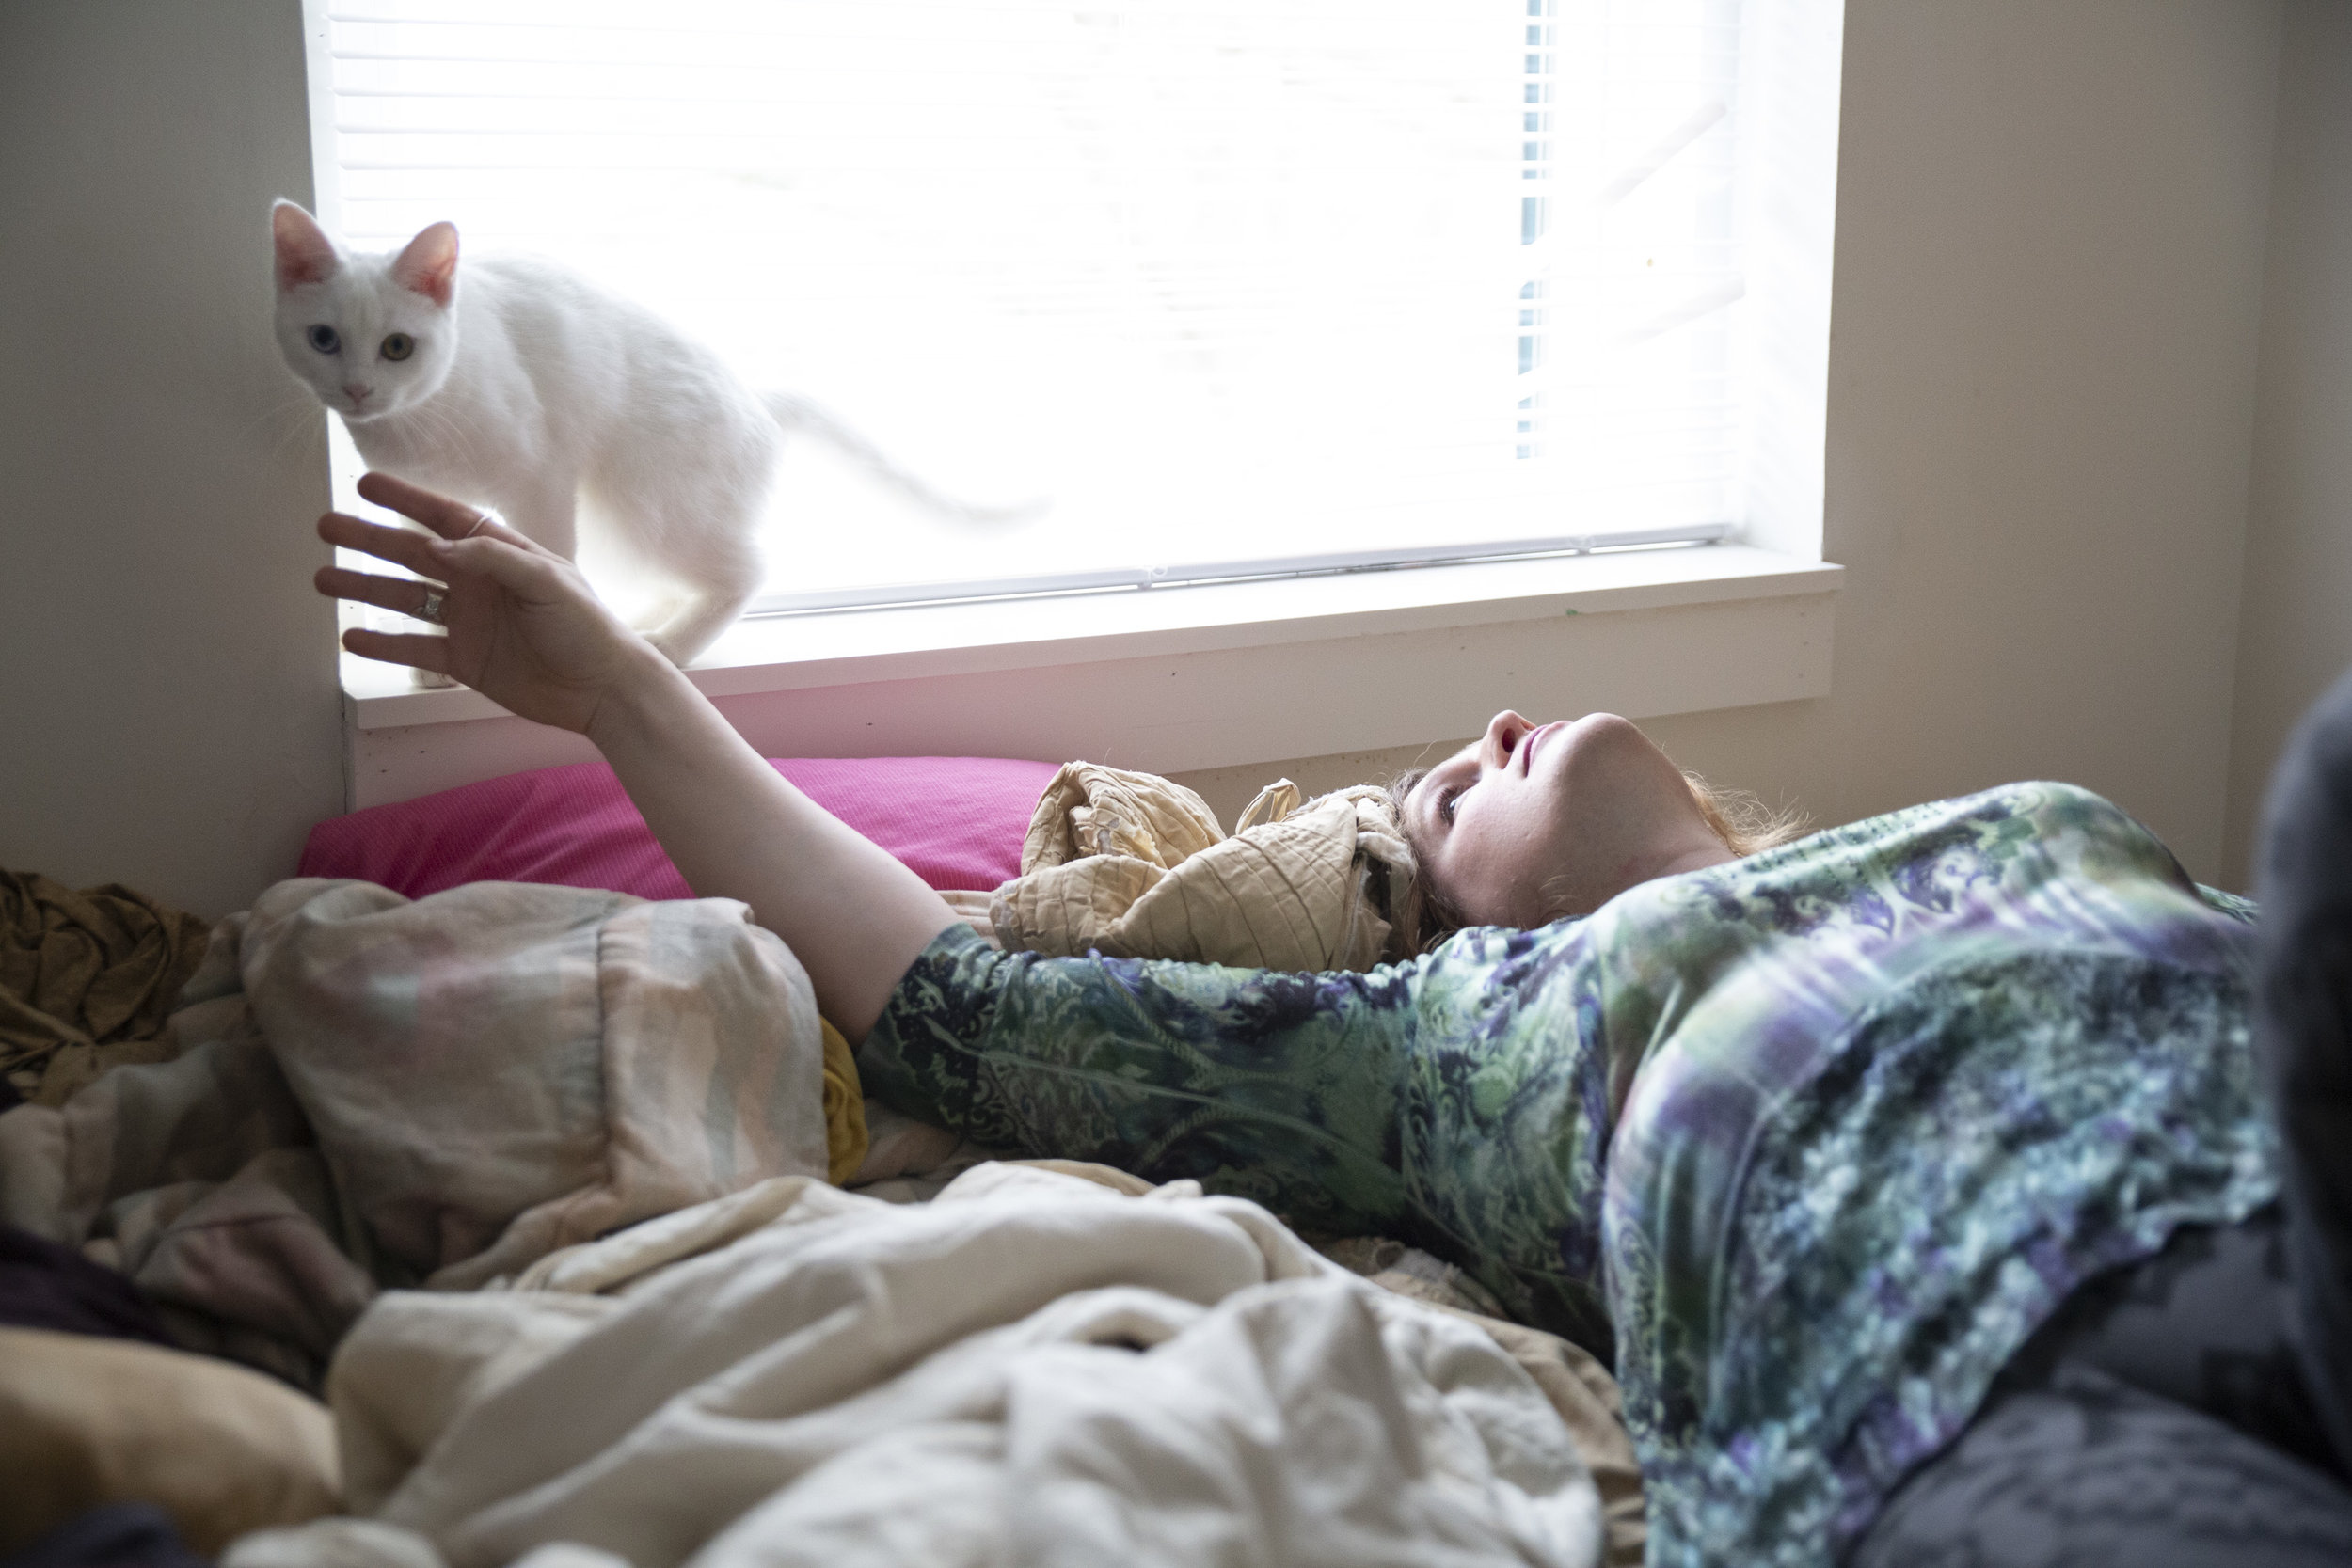 """""""My goal is to get to the point where I'm just Megan the woman, not Megan the trans woman. But right now that's a very distant dream,"""" Smith says at home in Athens with her cat, Mewtwo."""